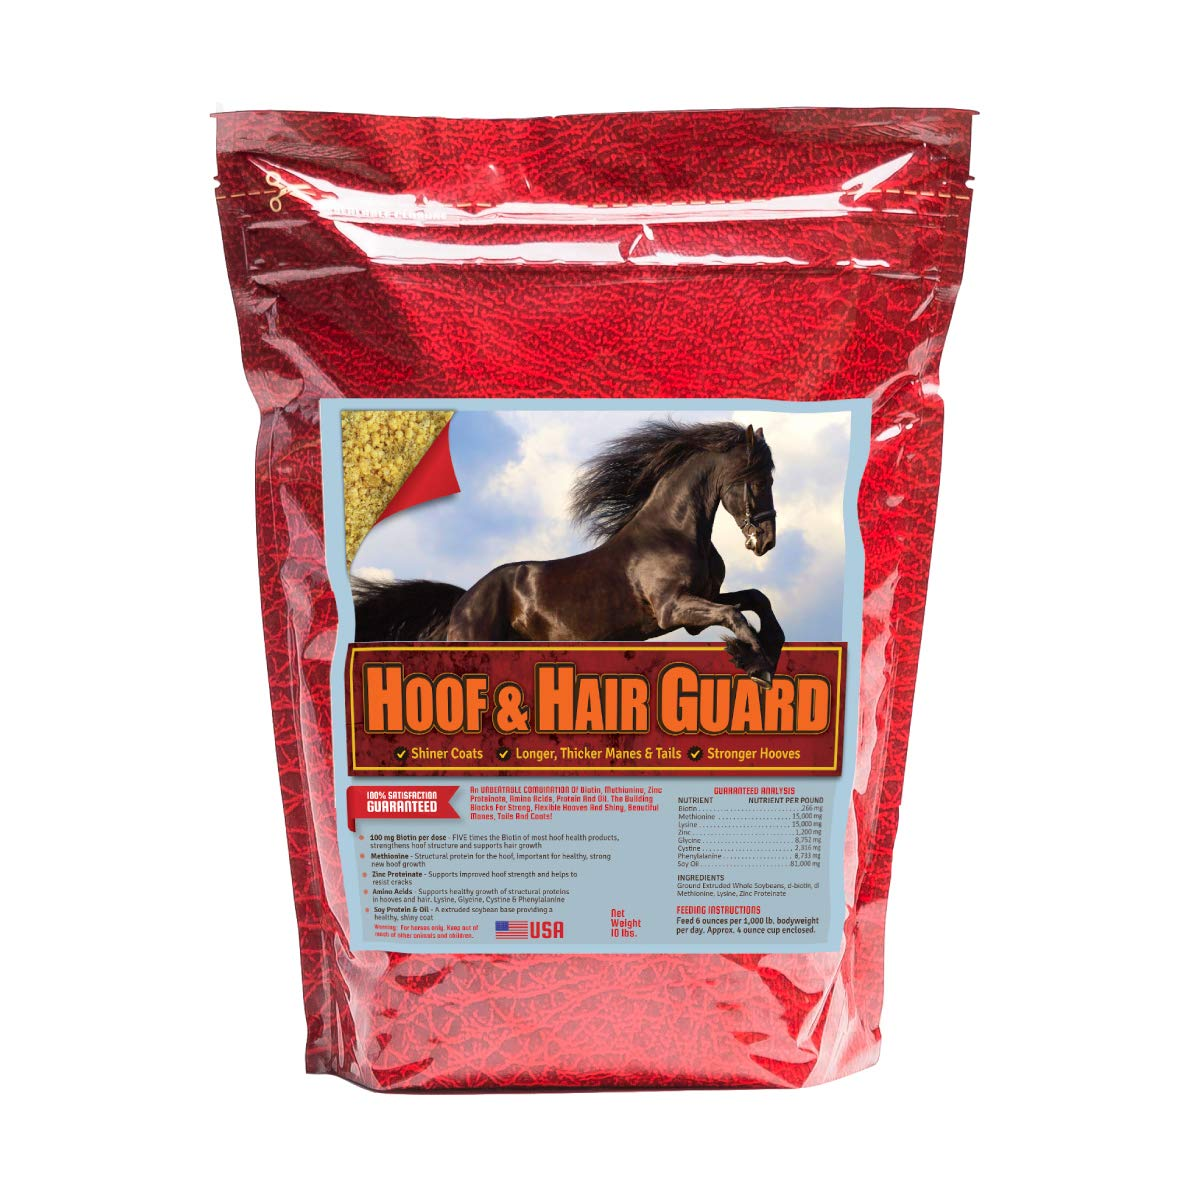 Horse Guard HOOF & HAIR GUARD EQUINE HOOF SUPPLEMENT AND EQUINE COAT SUPPLEMENT WITH AMINO ACIDS, BIOTIN, METHIONINE & SOY OIL, 10 lb by Horse Guard